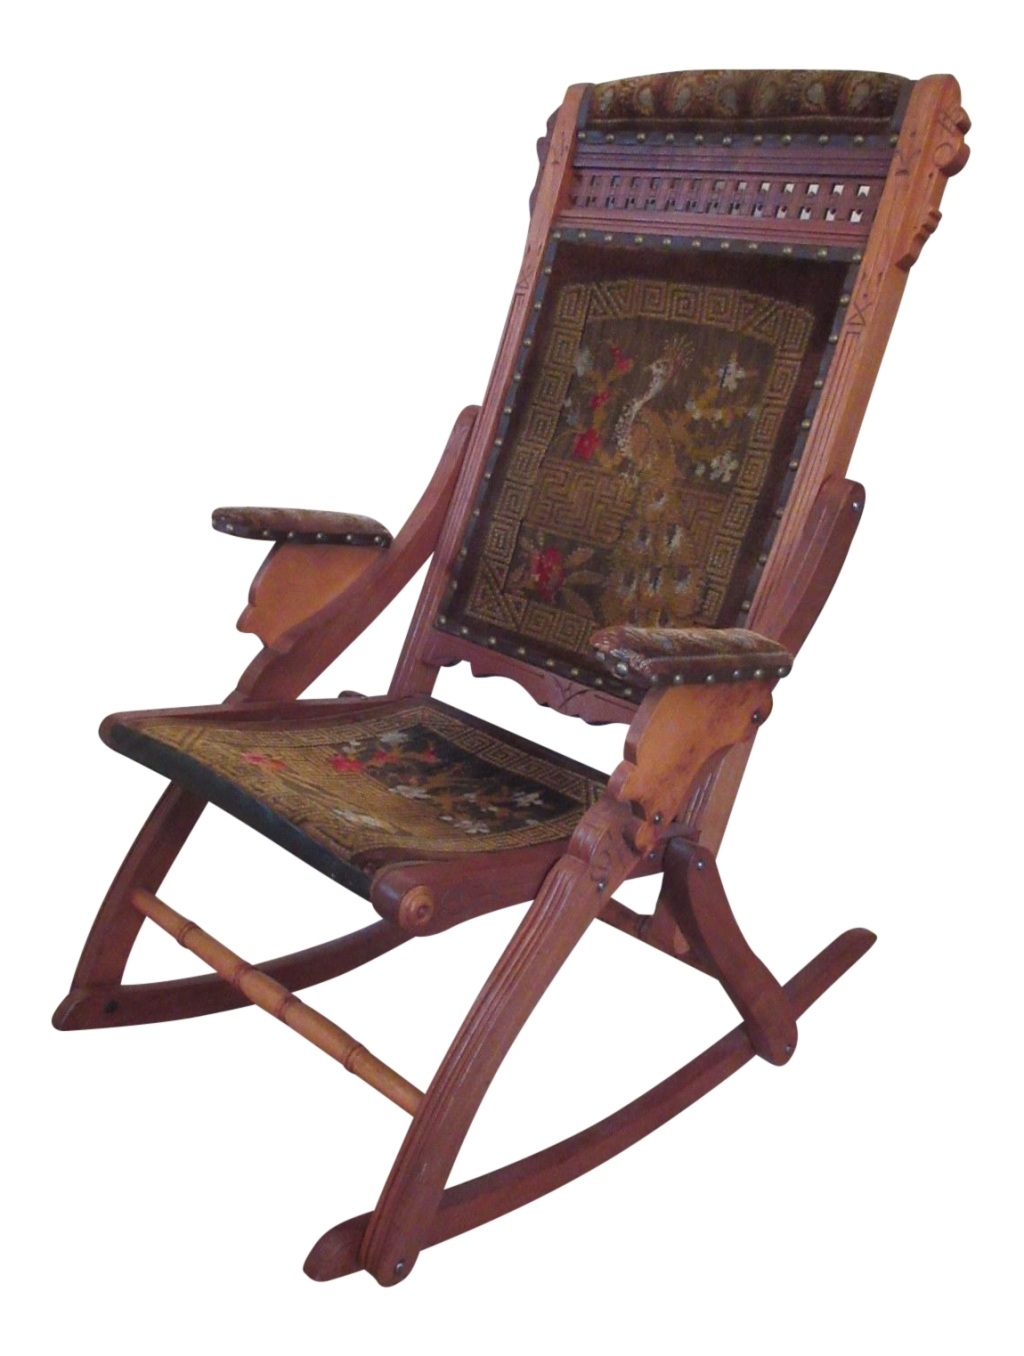 Victorian Rocking Chairs Regarding Favorite Vintage Used Wood Rocking Chairs Chairish Antique Wooden Victorian (View 18 of 20)